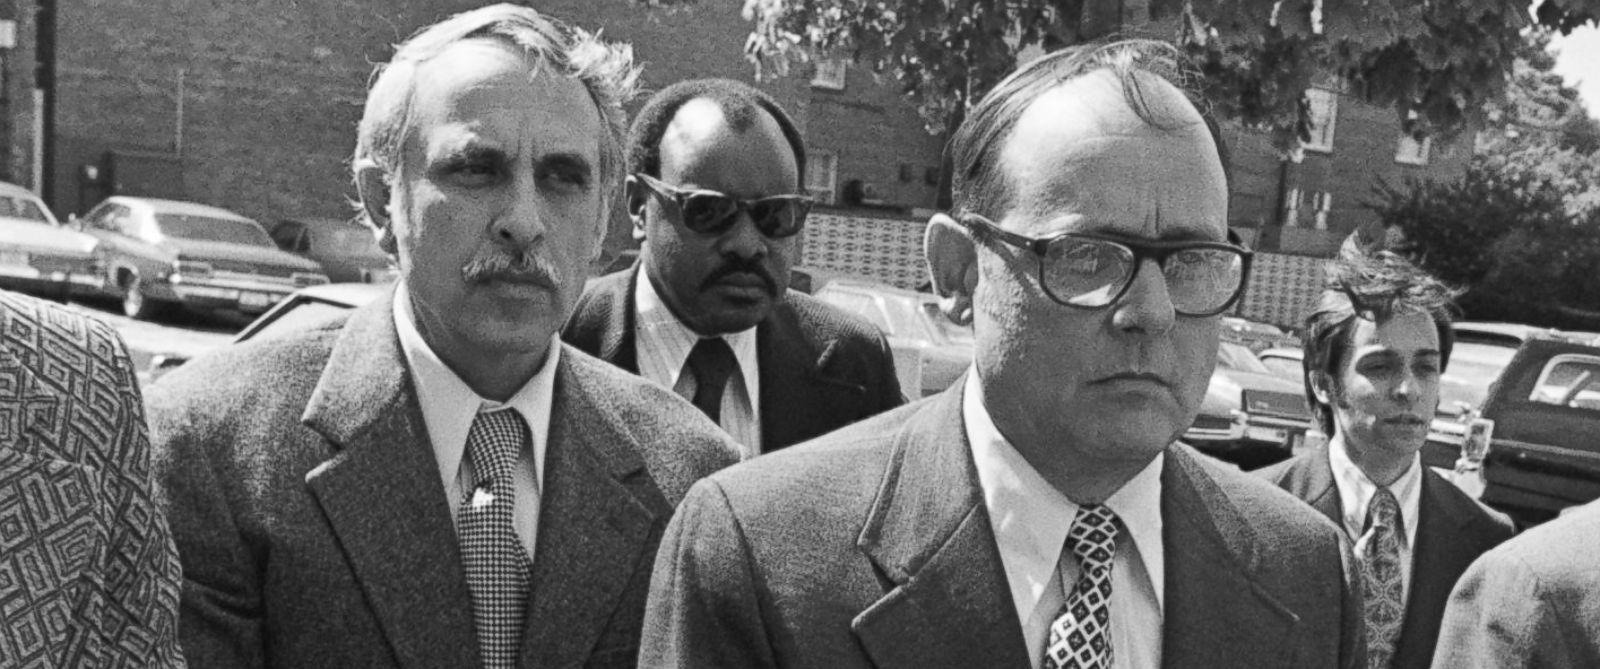 PHOTO: Convicted Watergate defendants Eugenio R. Martinez and Bernard L. Barker arrive handcuffed at the Senate Office Building before their meeting with special investigators in Washington, May 11, 1973.